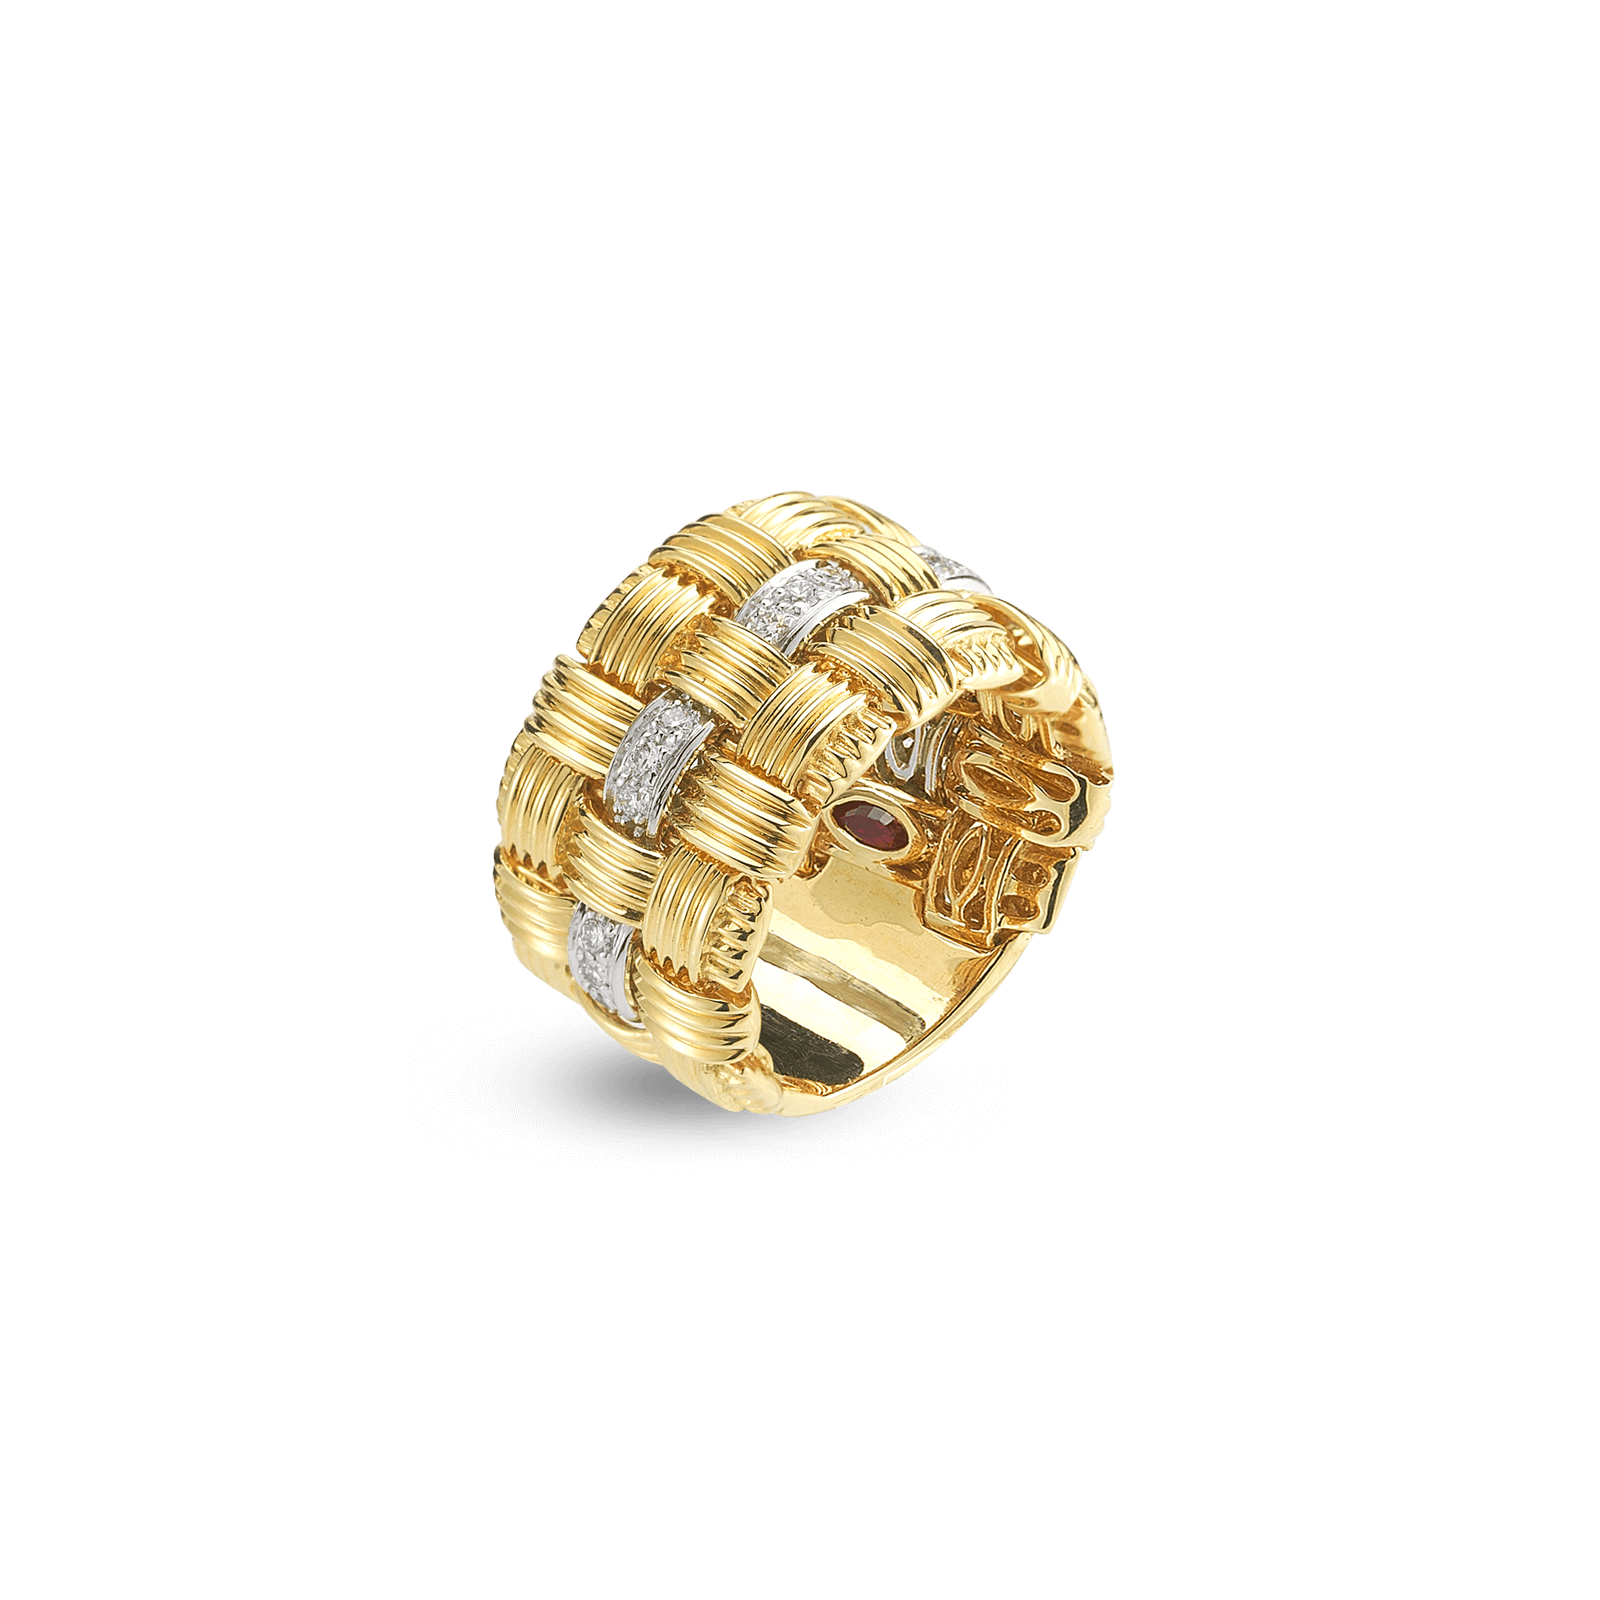 Roberto-Coin-Appassionata-18K-Yellow-Gold-and-18K-White-Gold-3-Row-Ring-with-Diamonds-639080AJLRD0_2